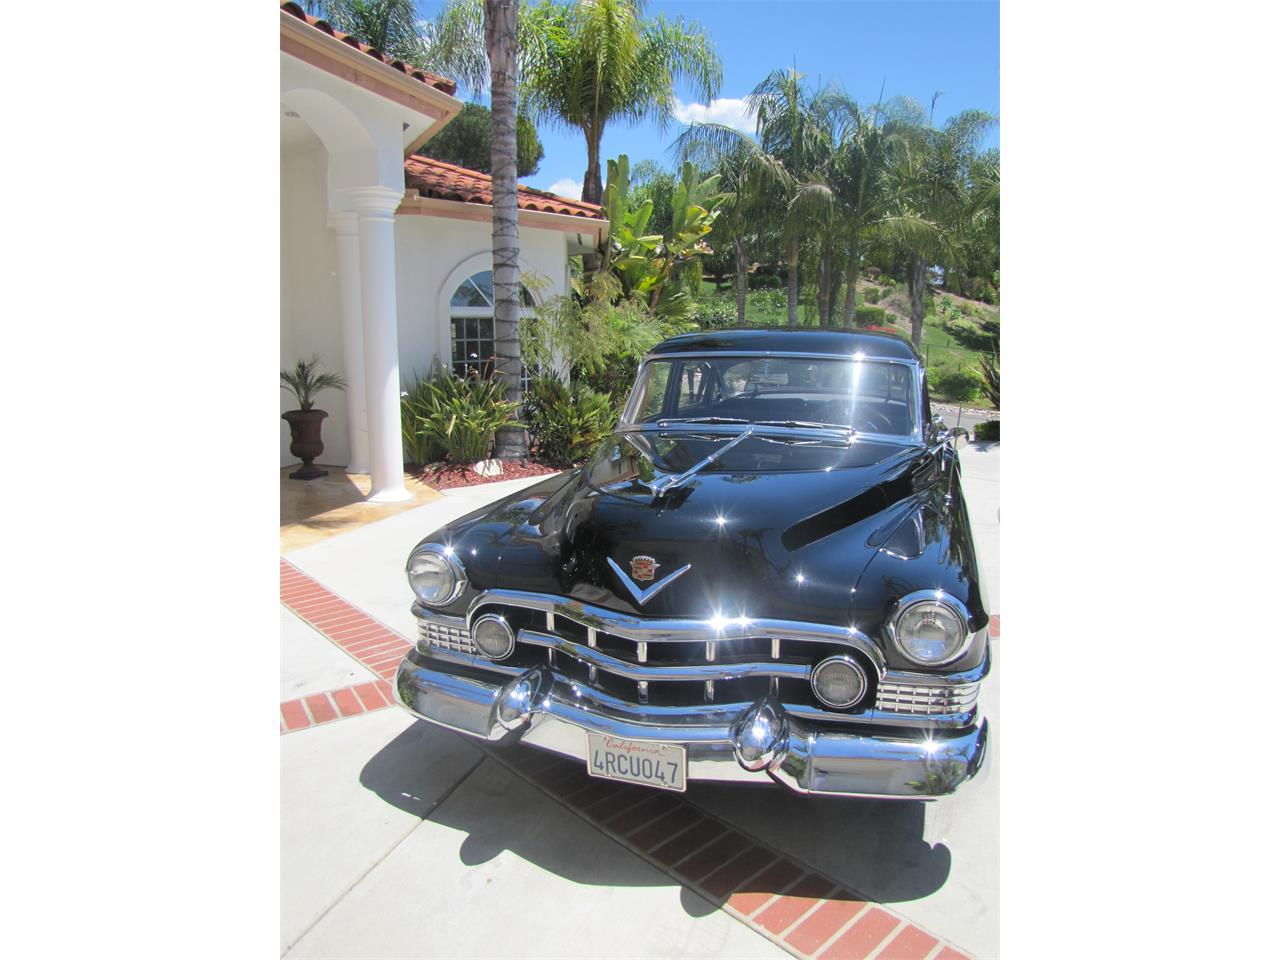 Large Picture of Classic 1951 Cadillac Sedan located in Santa Clarita California Offered by a Private Seller - MLNS